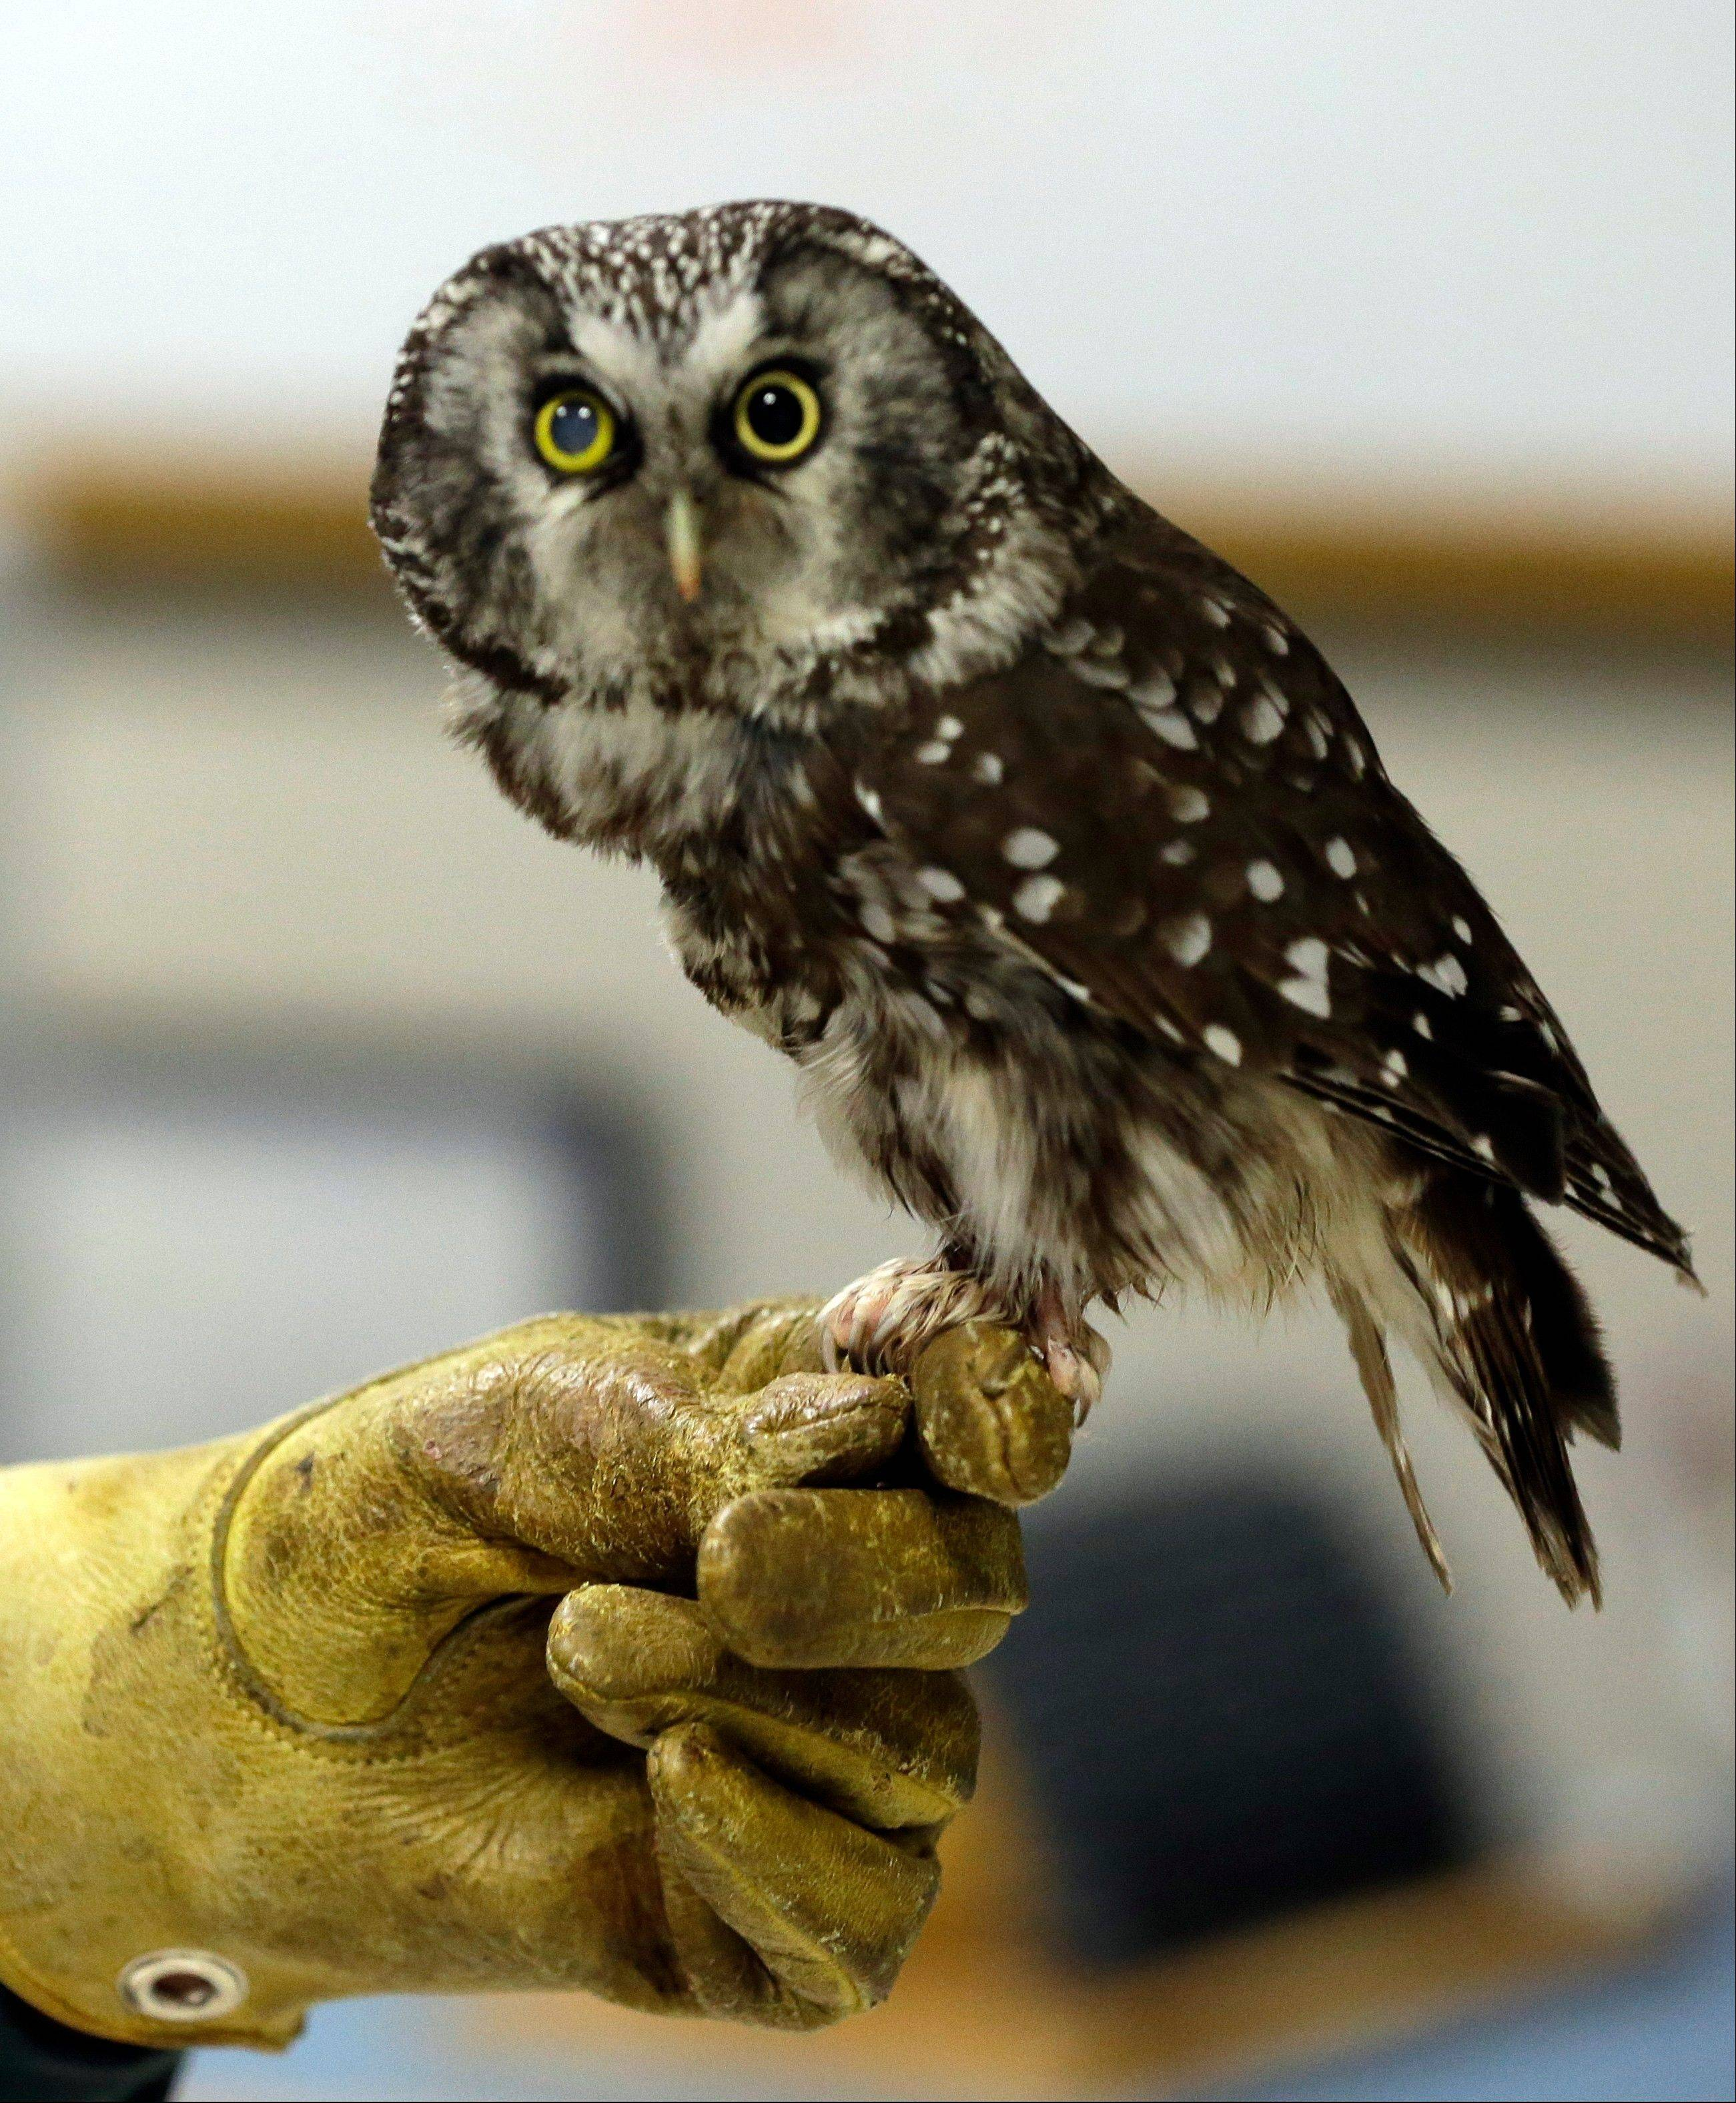 Boreas, an injured boreal owl, sits Wednesday on a handlers hand at the Raptor Center on the St. Paul campus of the University of Minnesota.